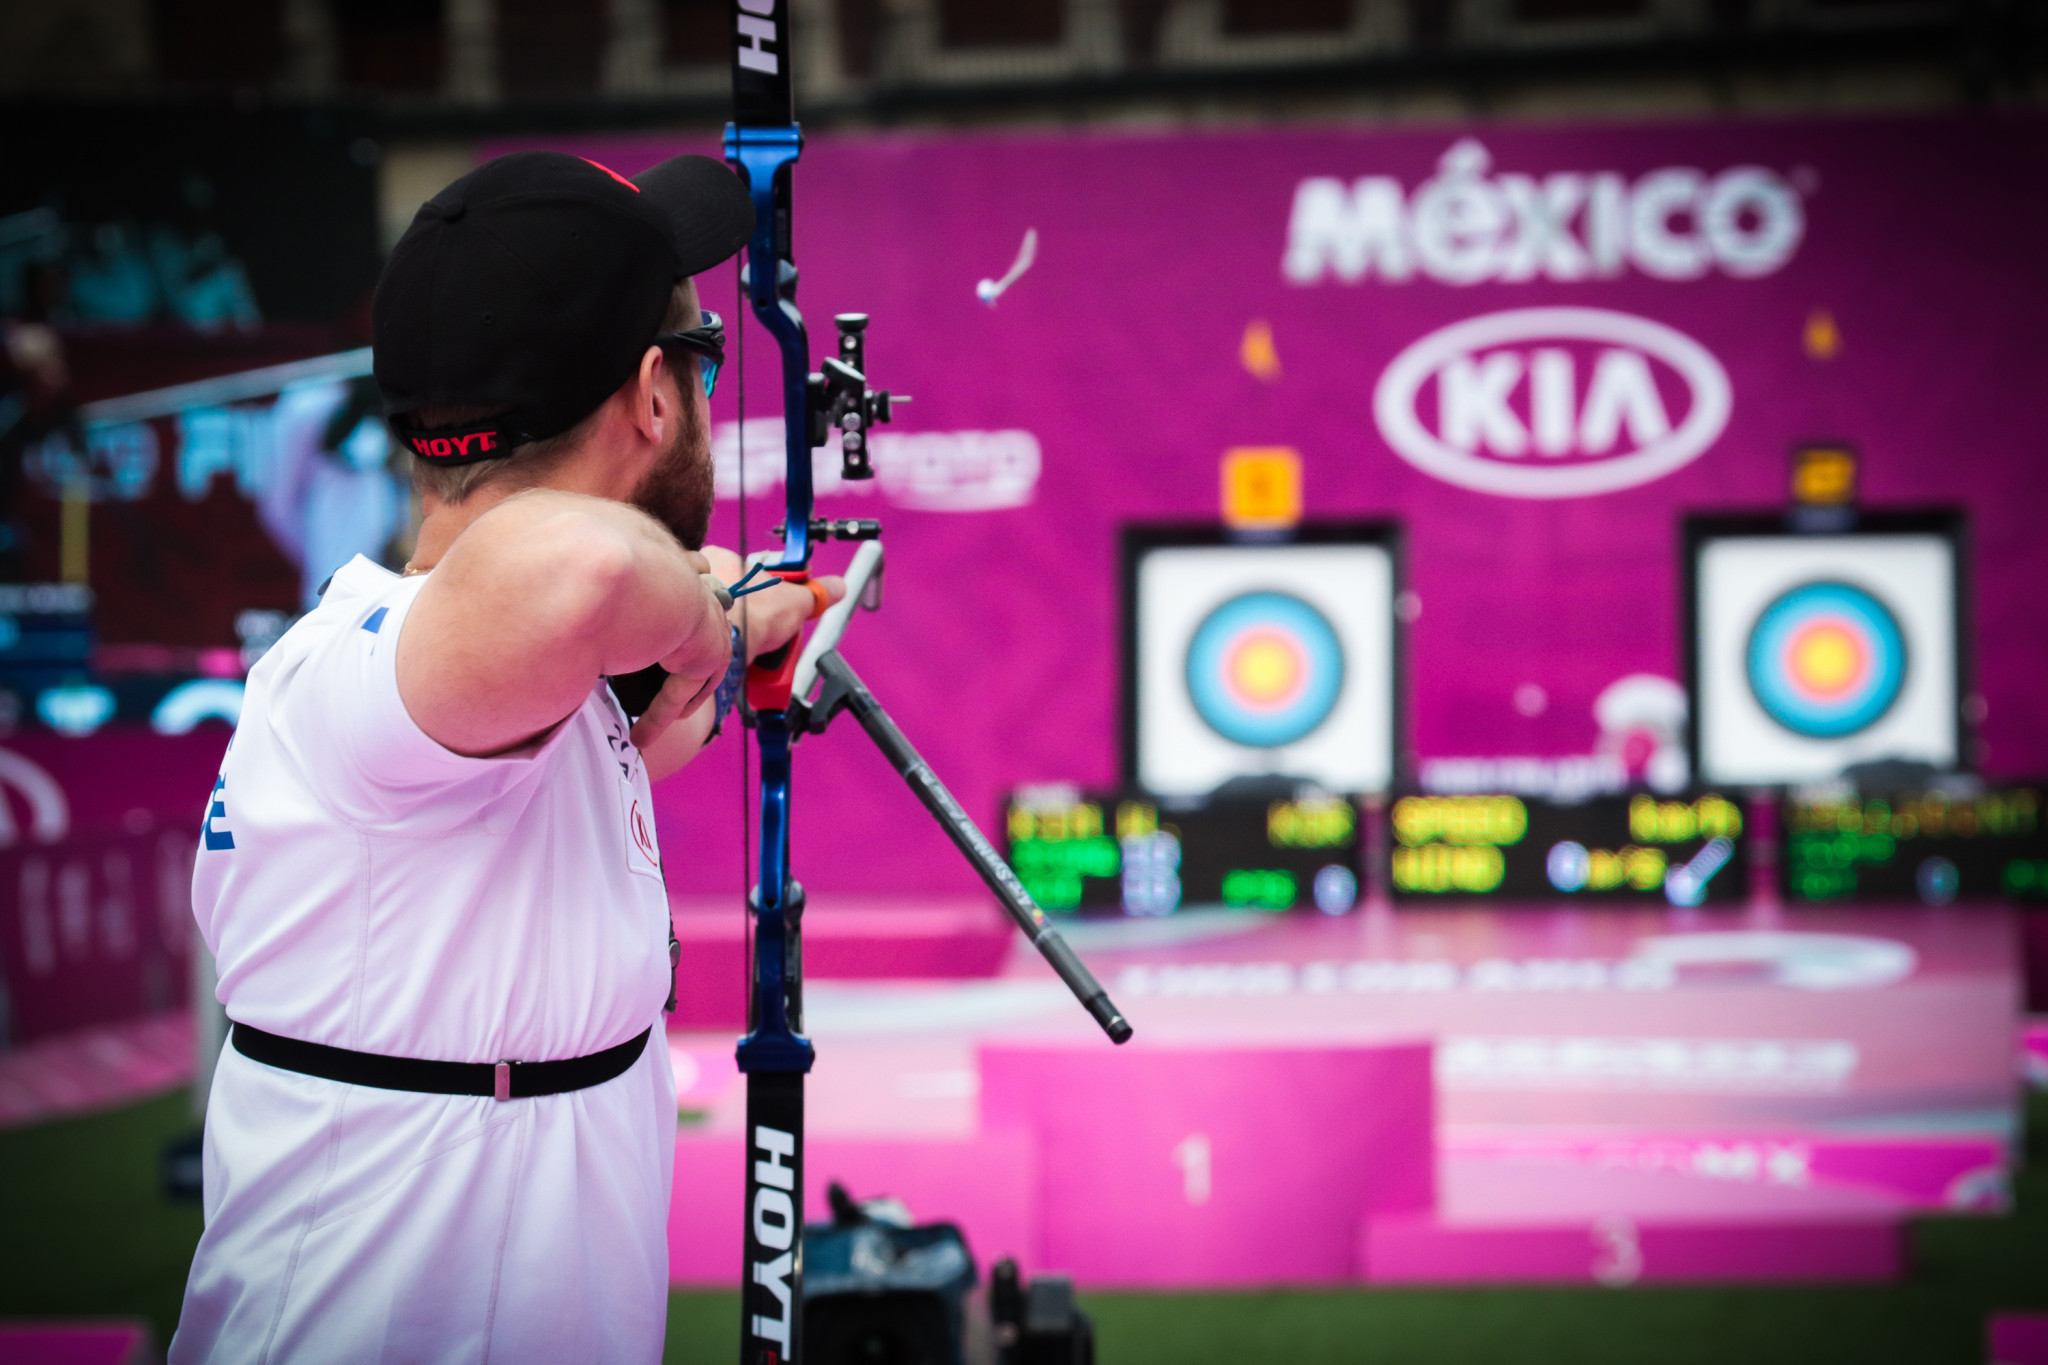 The world's best archers will compete in Mexico City from tomorrow ©Getty Images